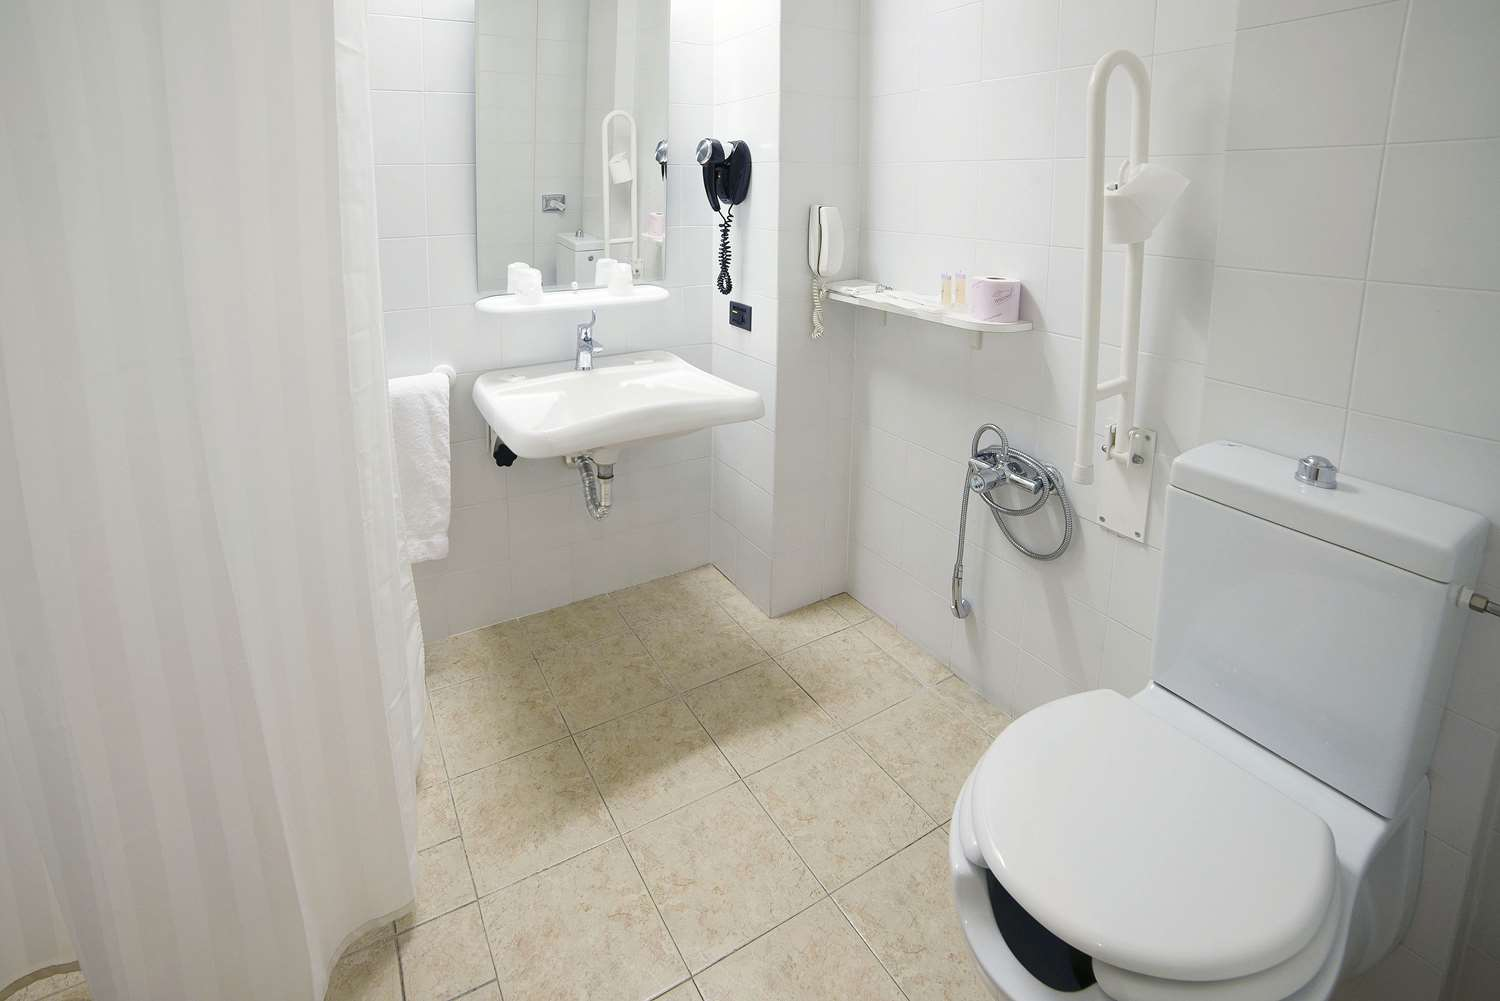 Room : Bathroom with facilities for disable 121 of 390